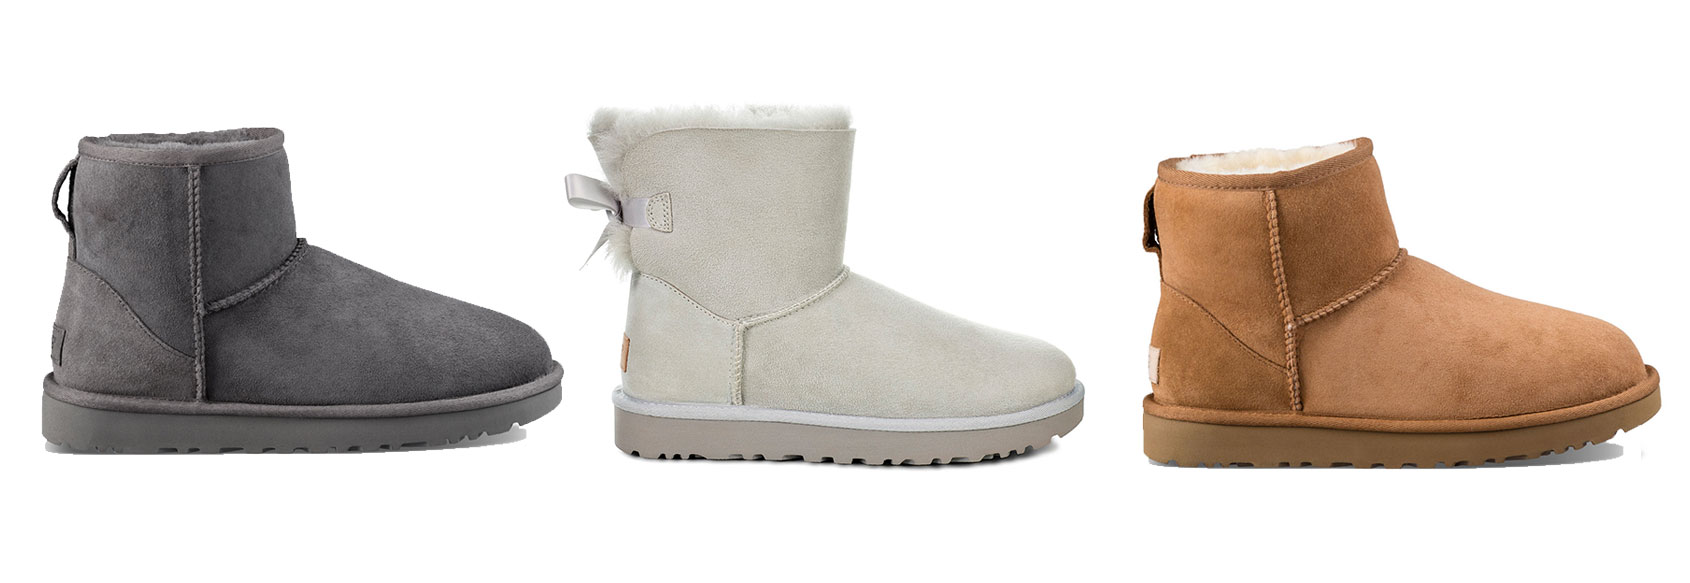 14ec23e34d1 Shop Uggs Slippers and Winter Ugg Boots for Women | JONES